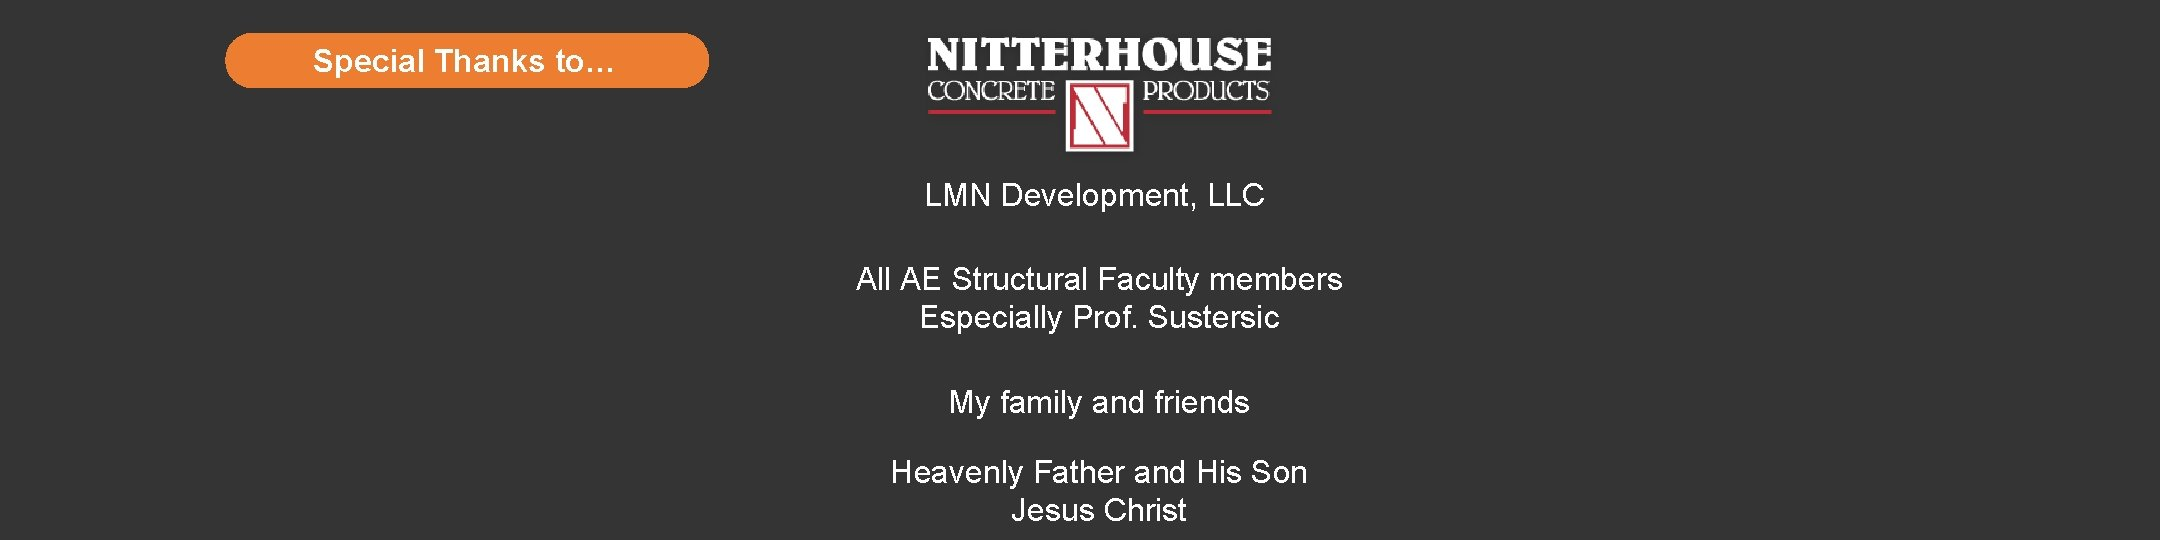 Special Thanks to… LMN Development, LLC All AE Structural Faculty members Especially Prof. Sustersic